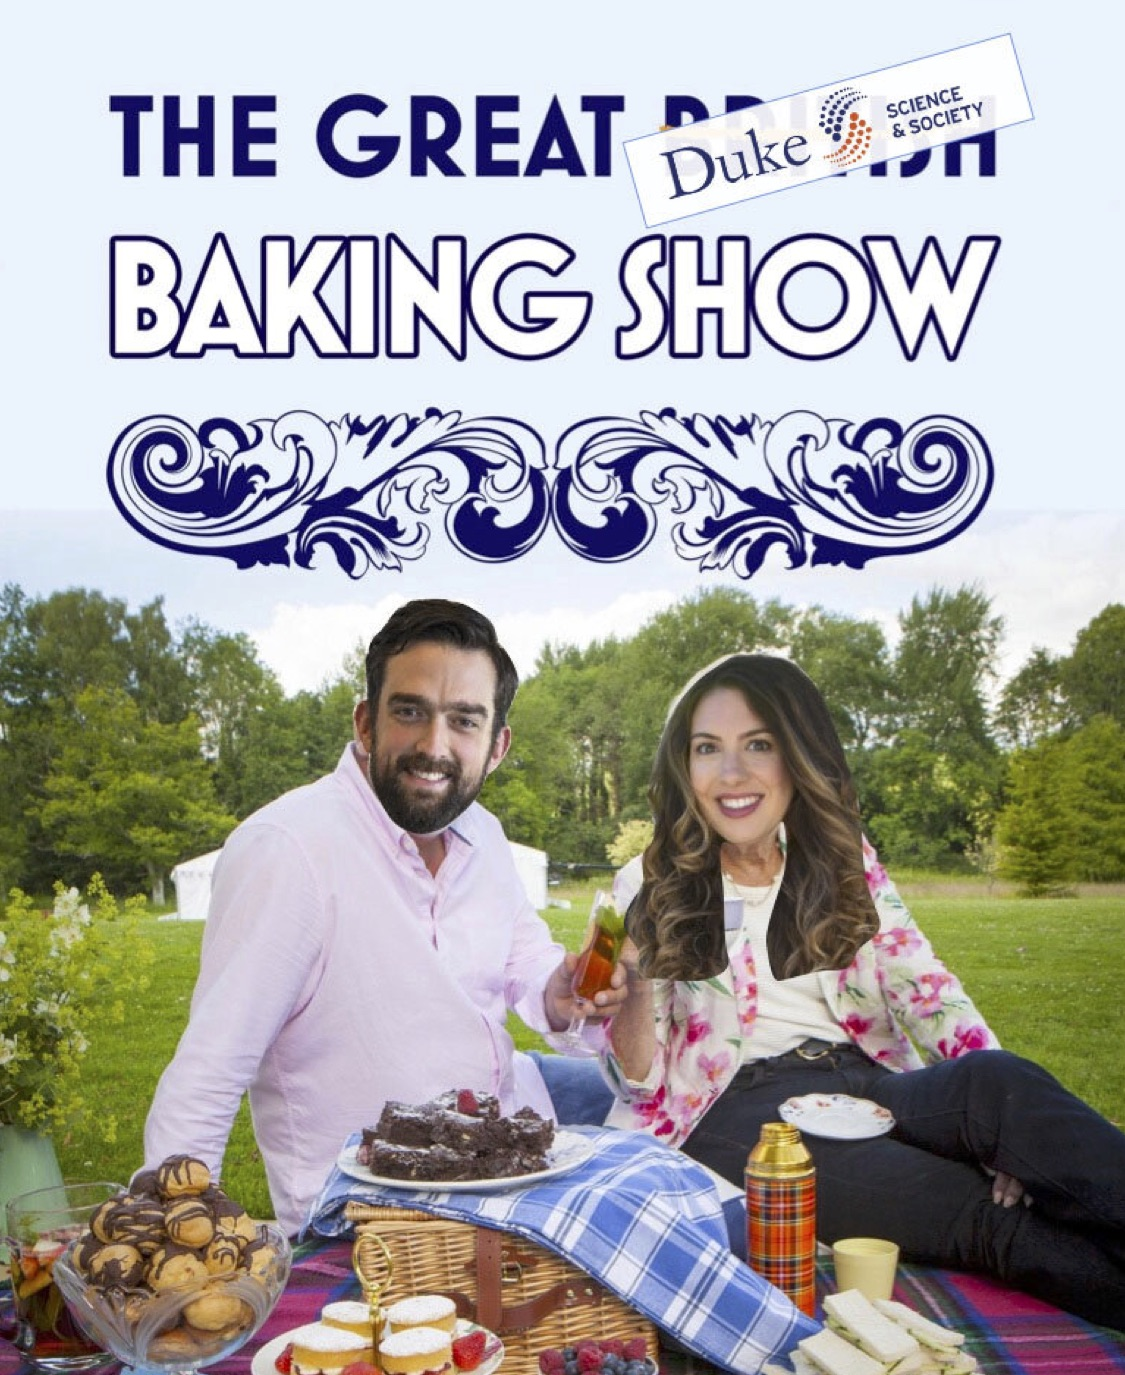 The Great Science & Society Baking Show